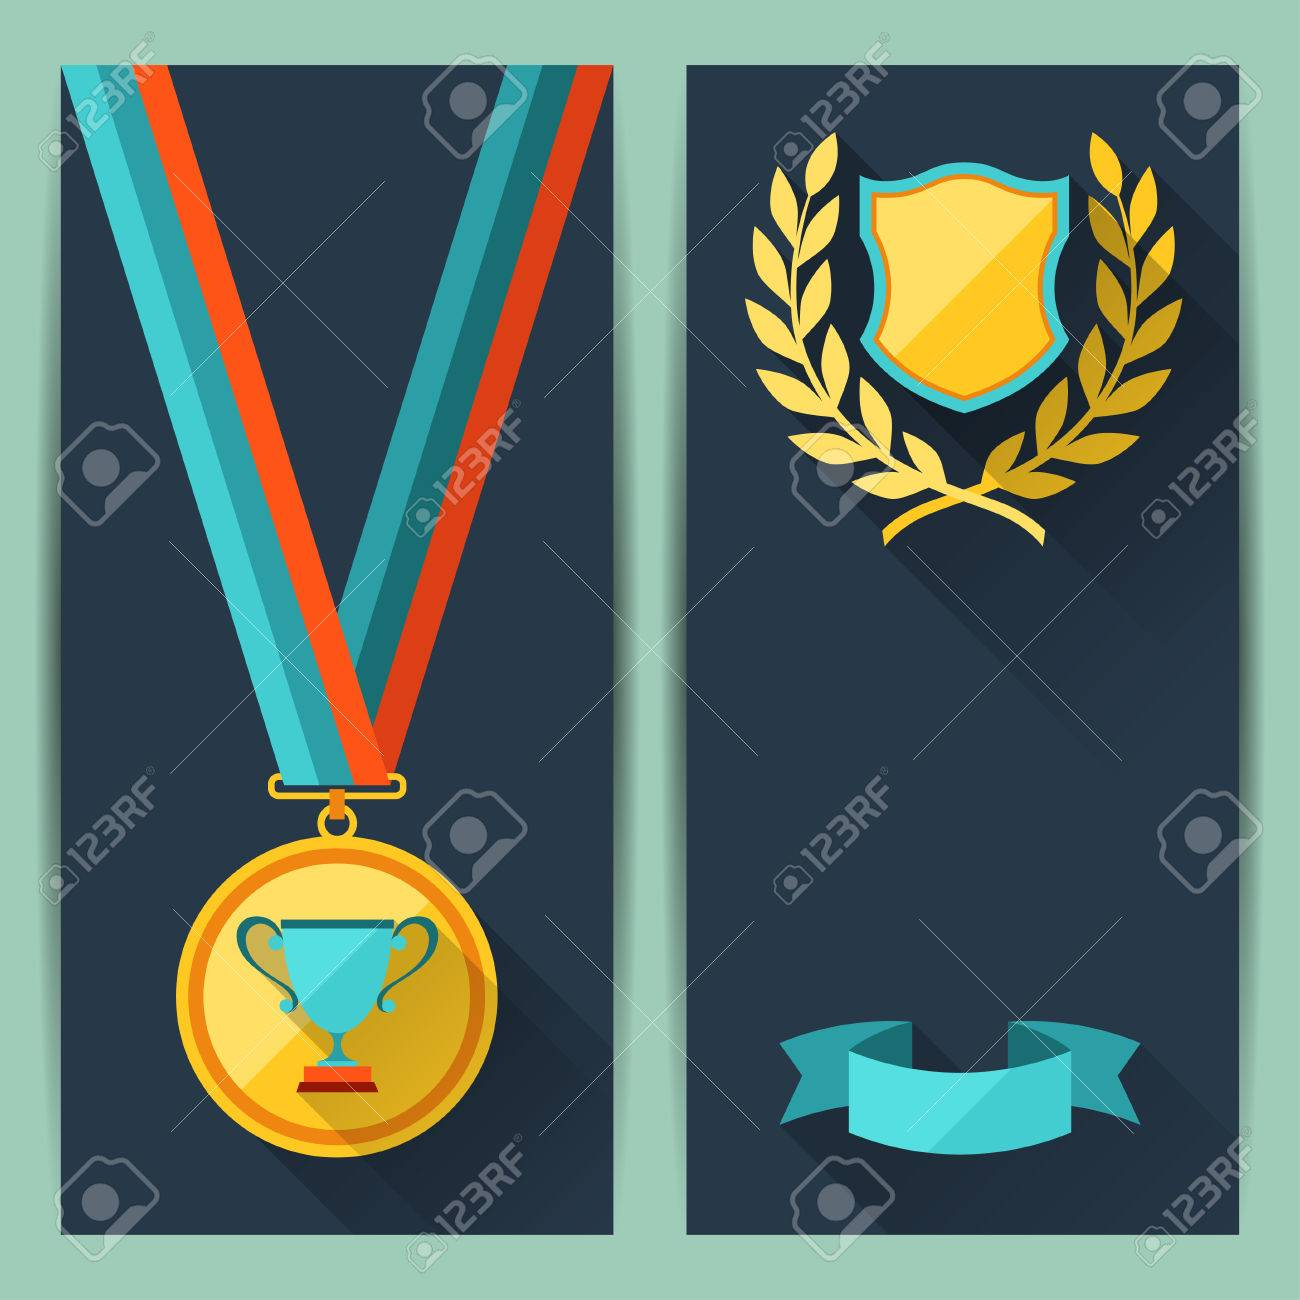 Certificate Templates With Trophies And Awards. Royalty Free ...